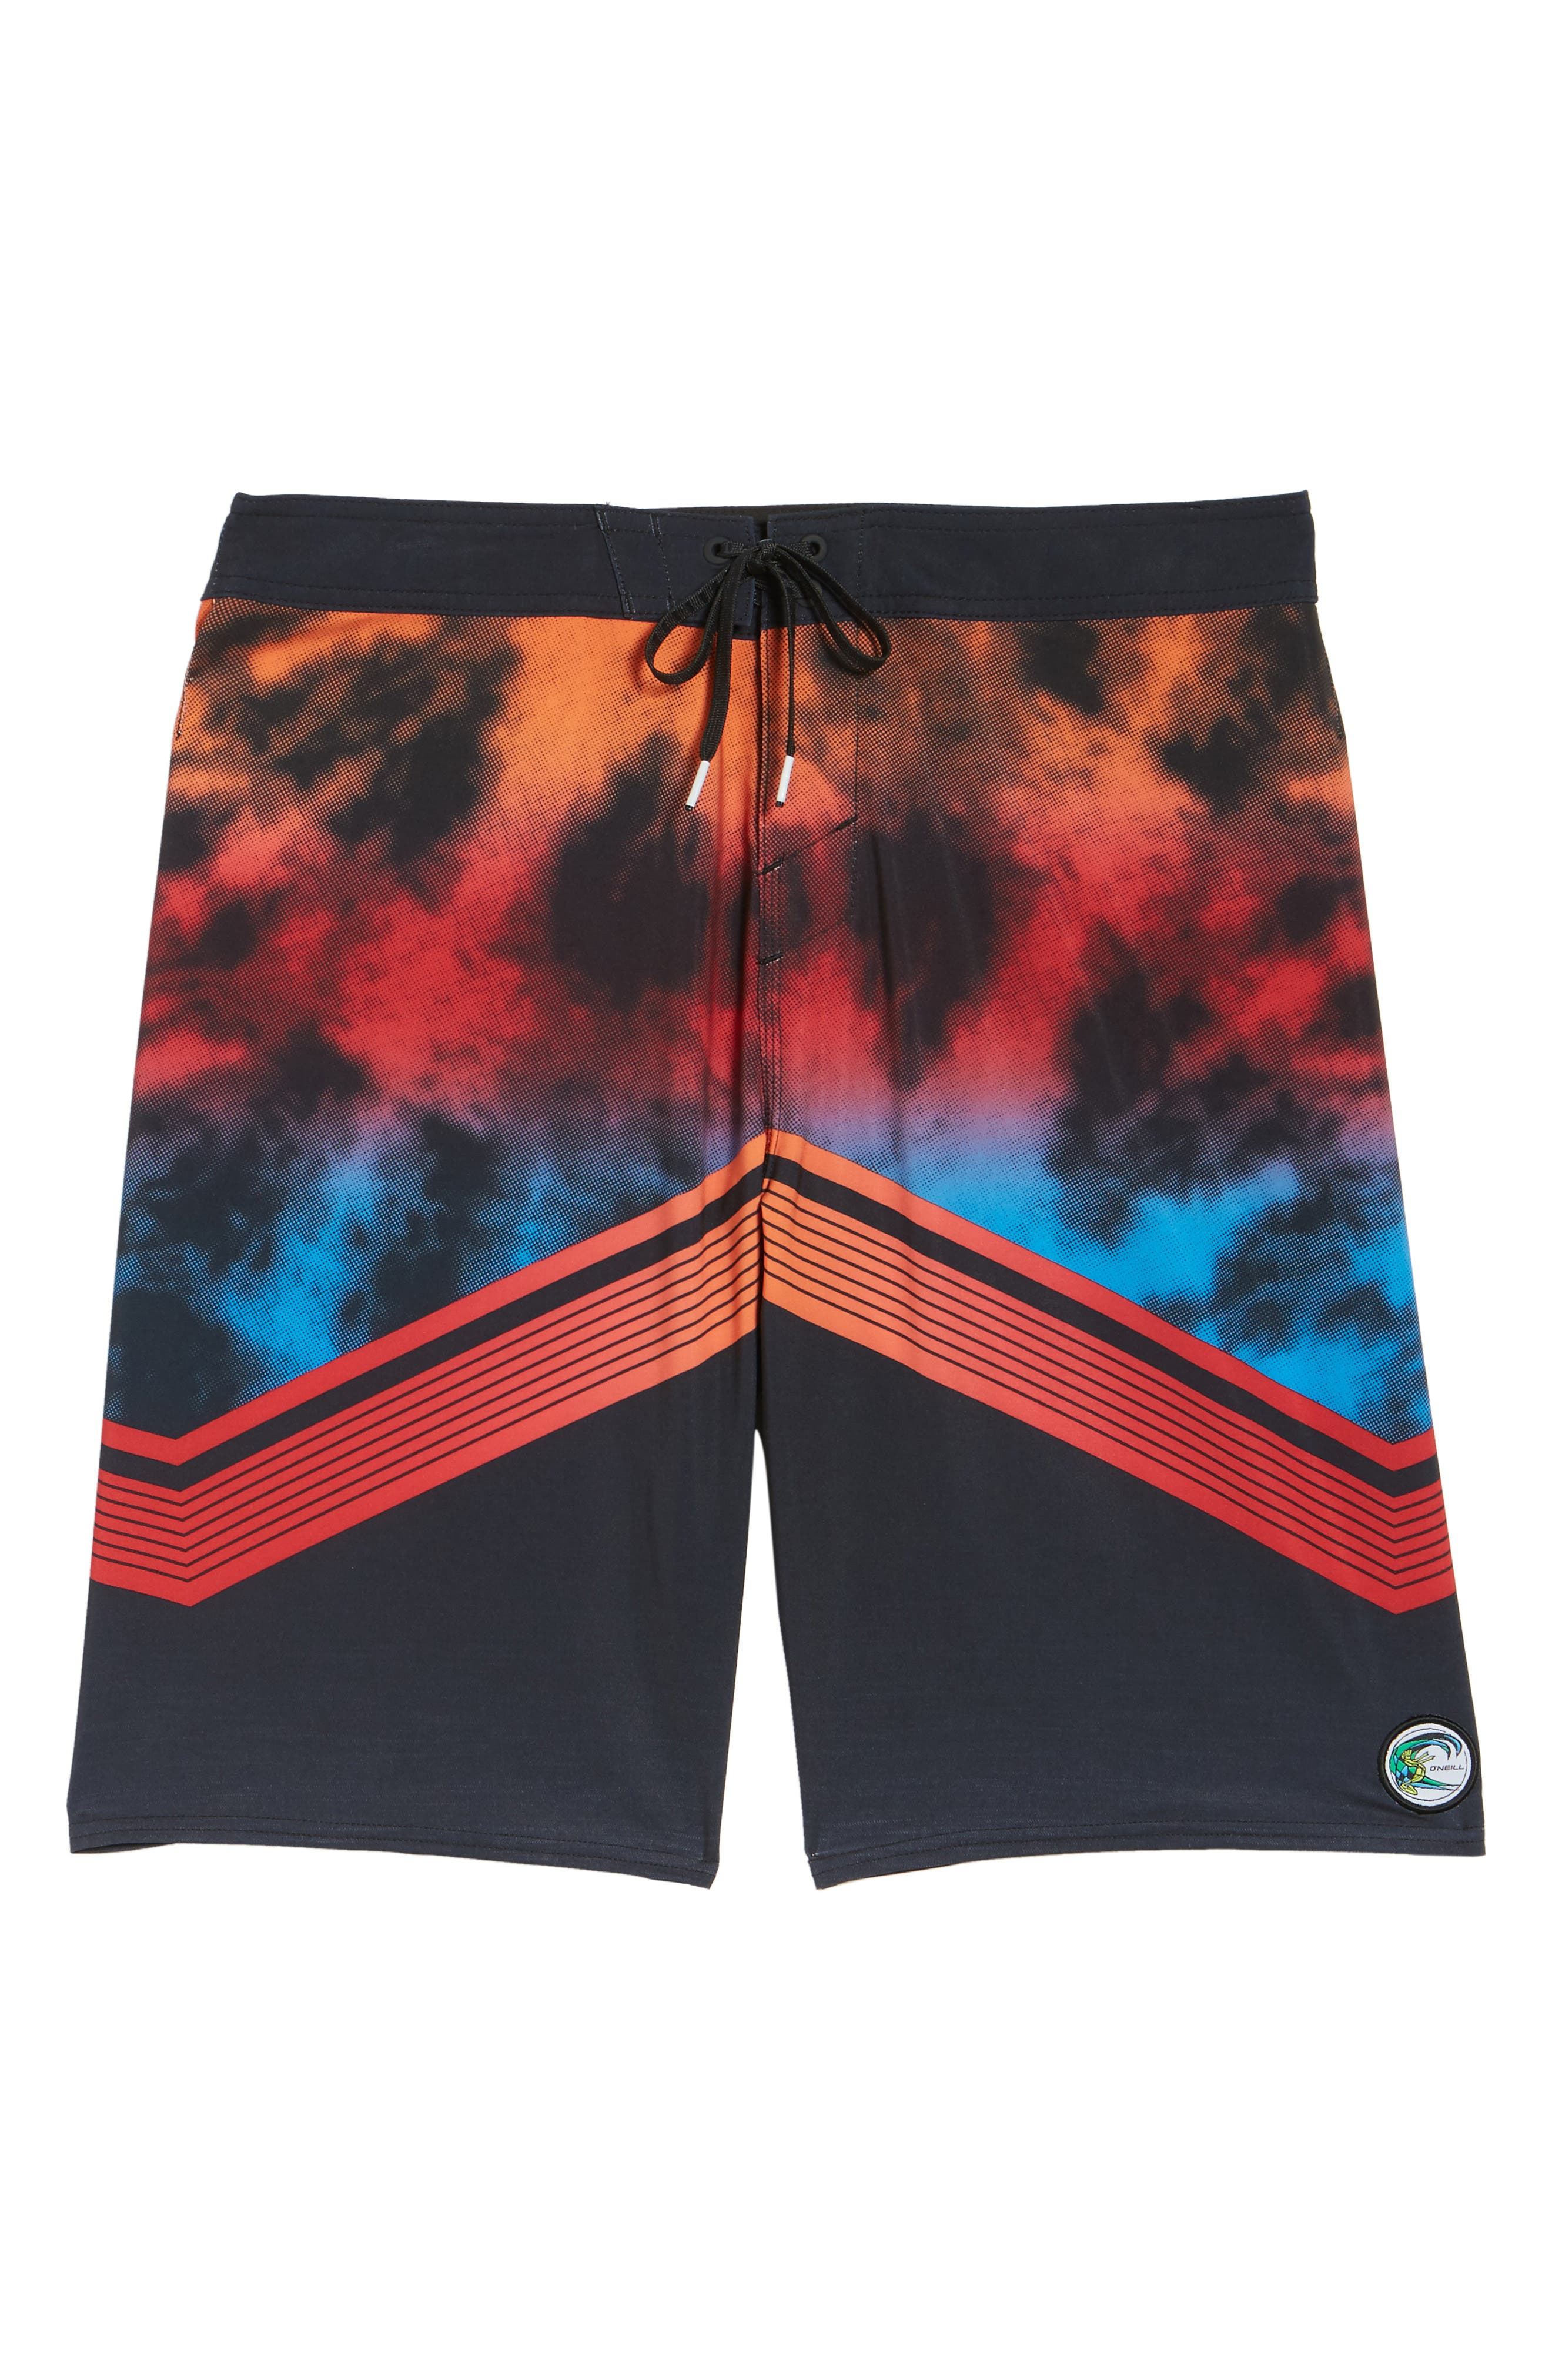 Hyperfreak Imagine Board Shorts,                             Alternate thumbnail 11, color,